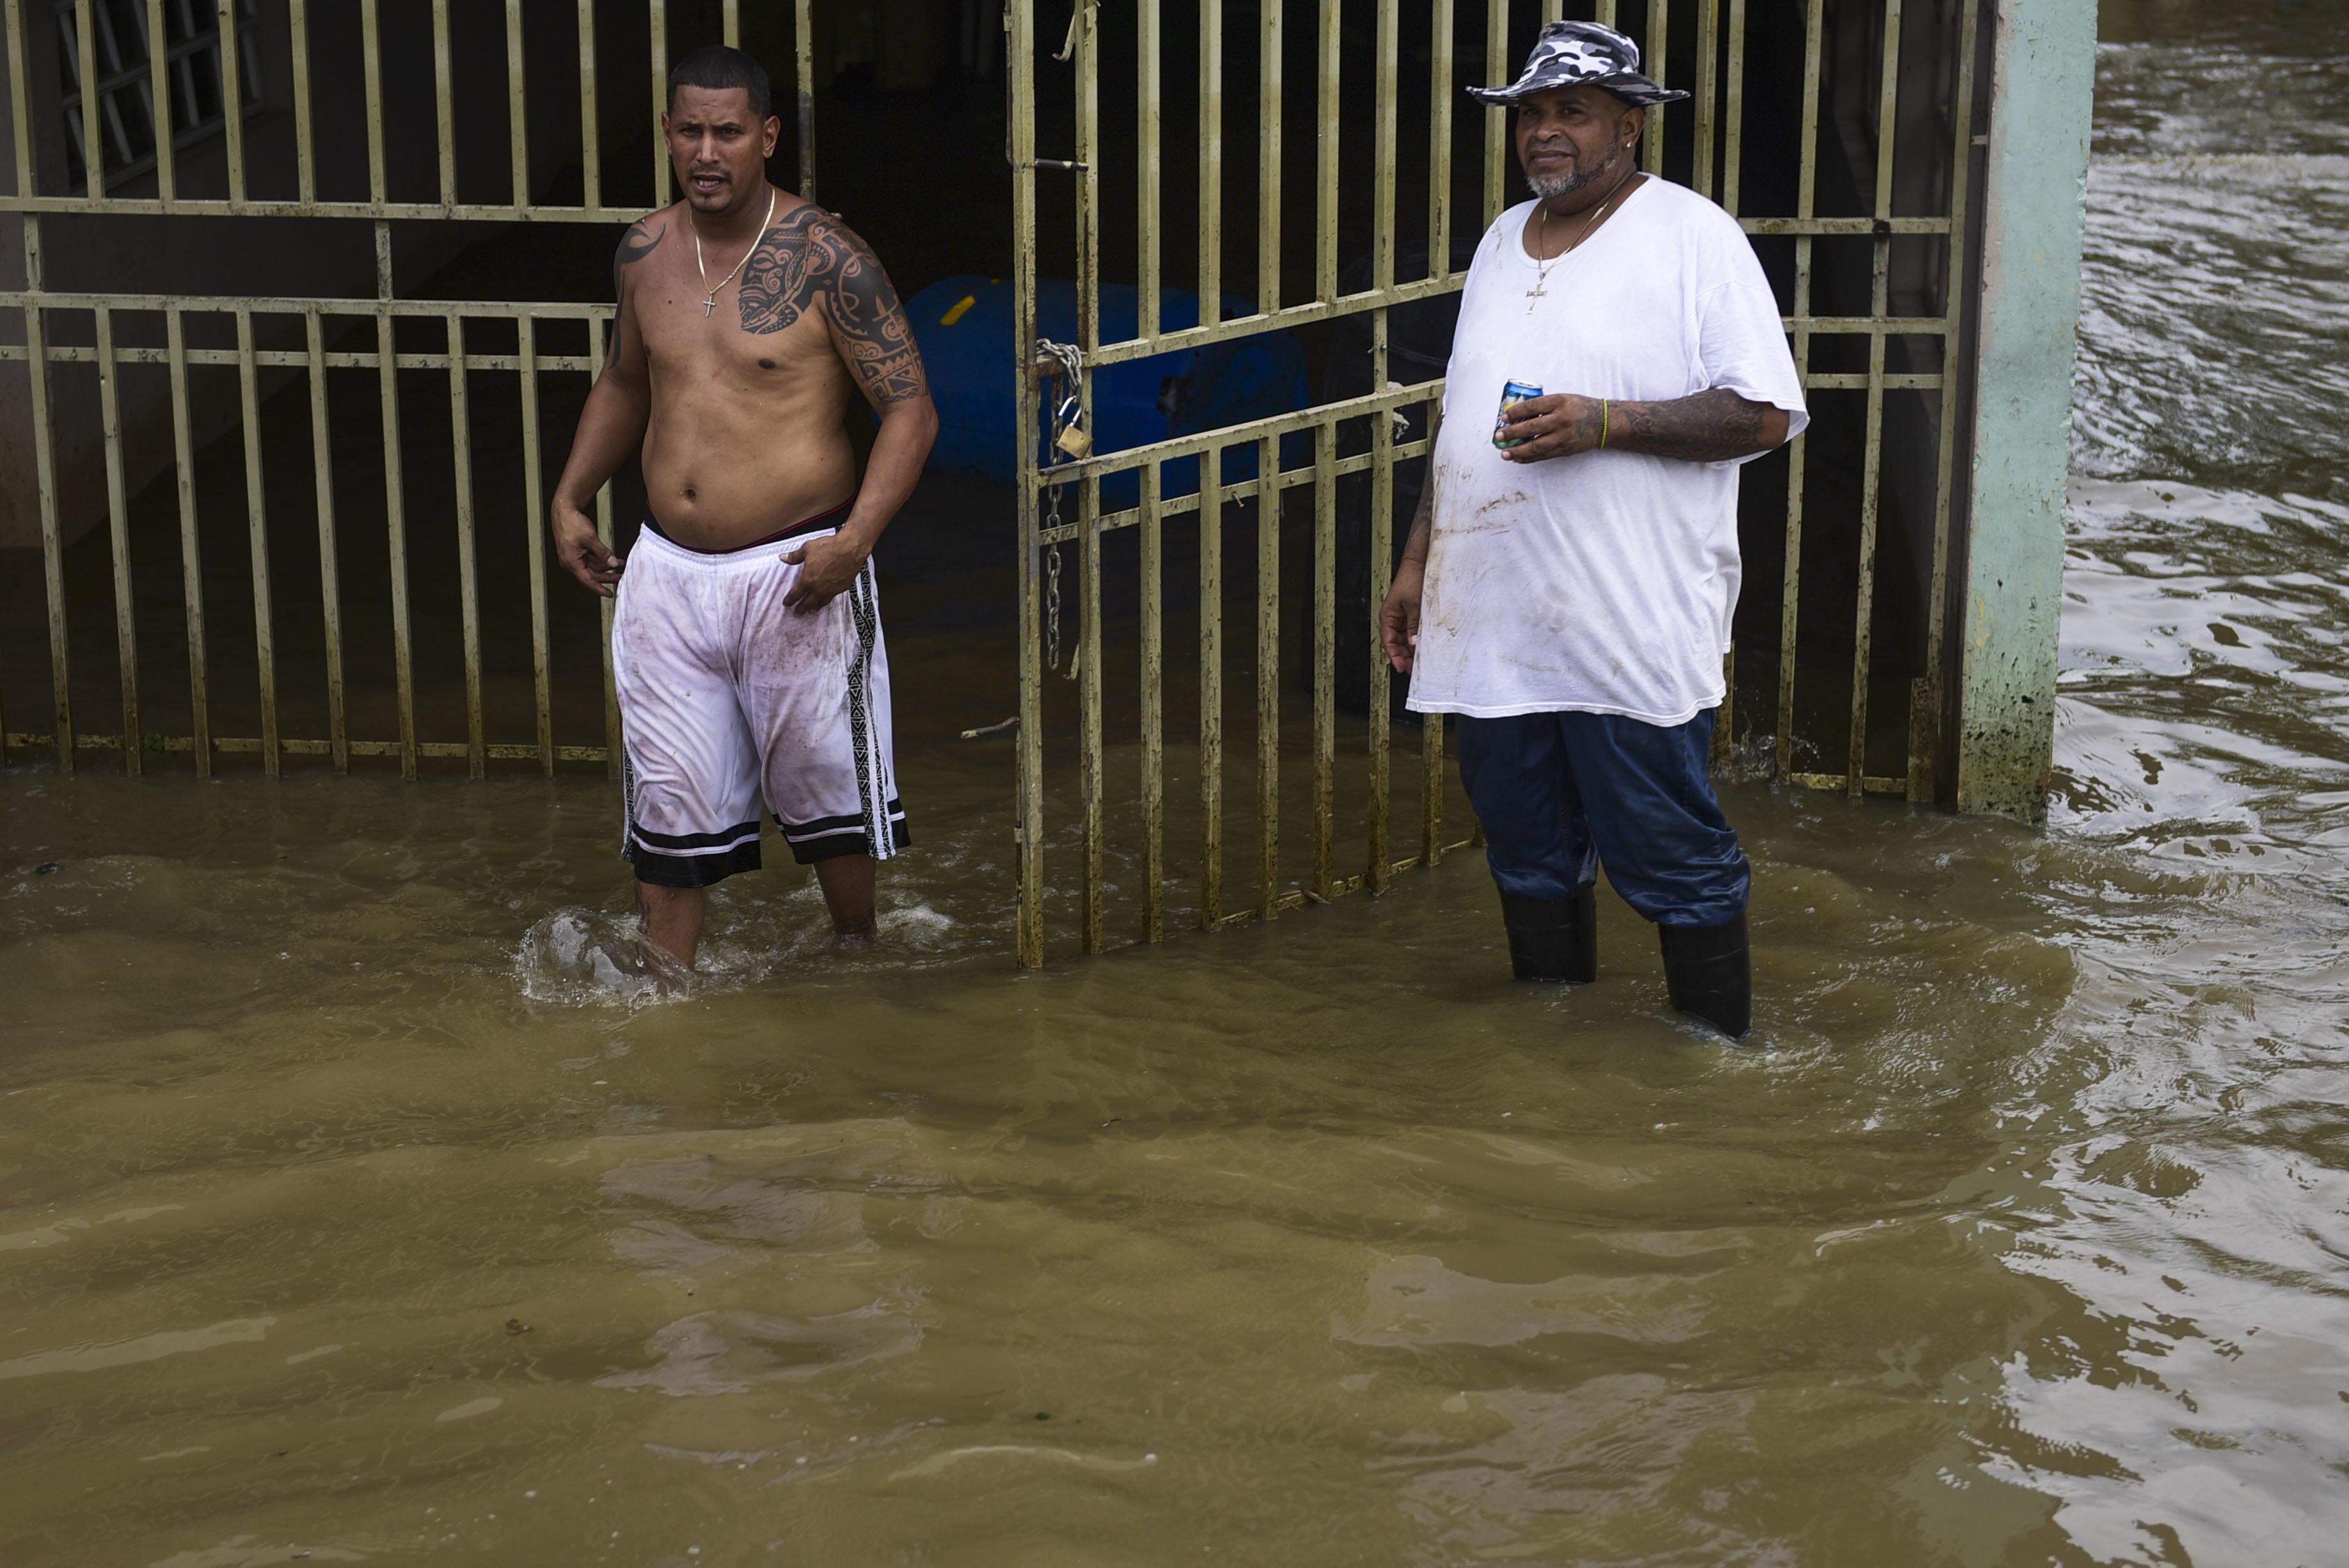 Residents from Ingenio walk through flooded areas after the passing of Hurricane Maria, in Ingenio, Puerto Rico, Friday, September 22, 2017. Because of the heavy rains brought by Maria, thousands of people were evacuated from Toa Baja after the municipal government opened the gates of the Rio La Plata Dam. (AP Photo/Carlos Giusti)